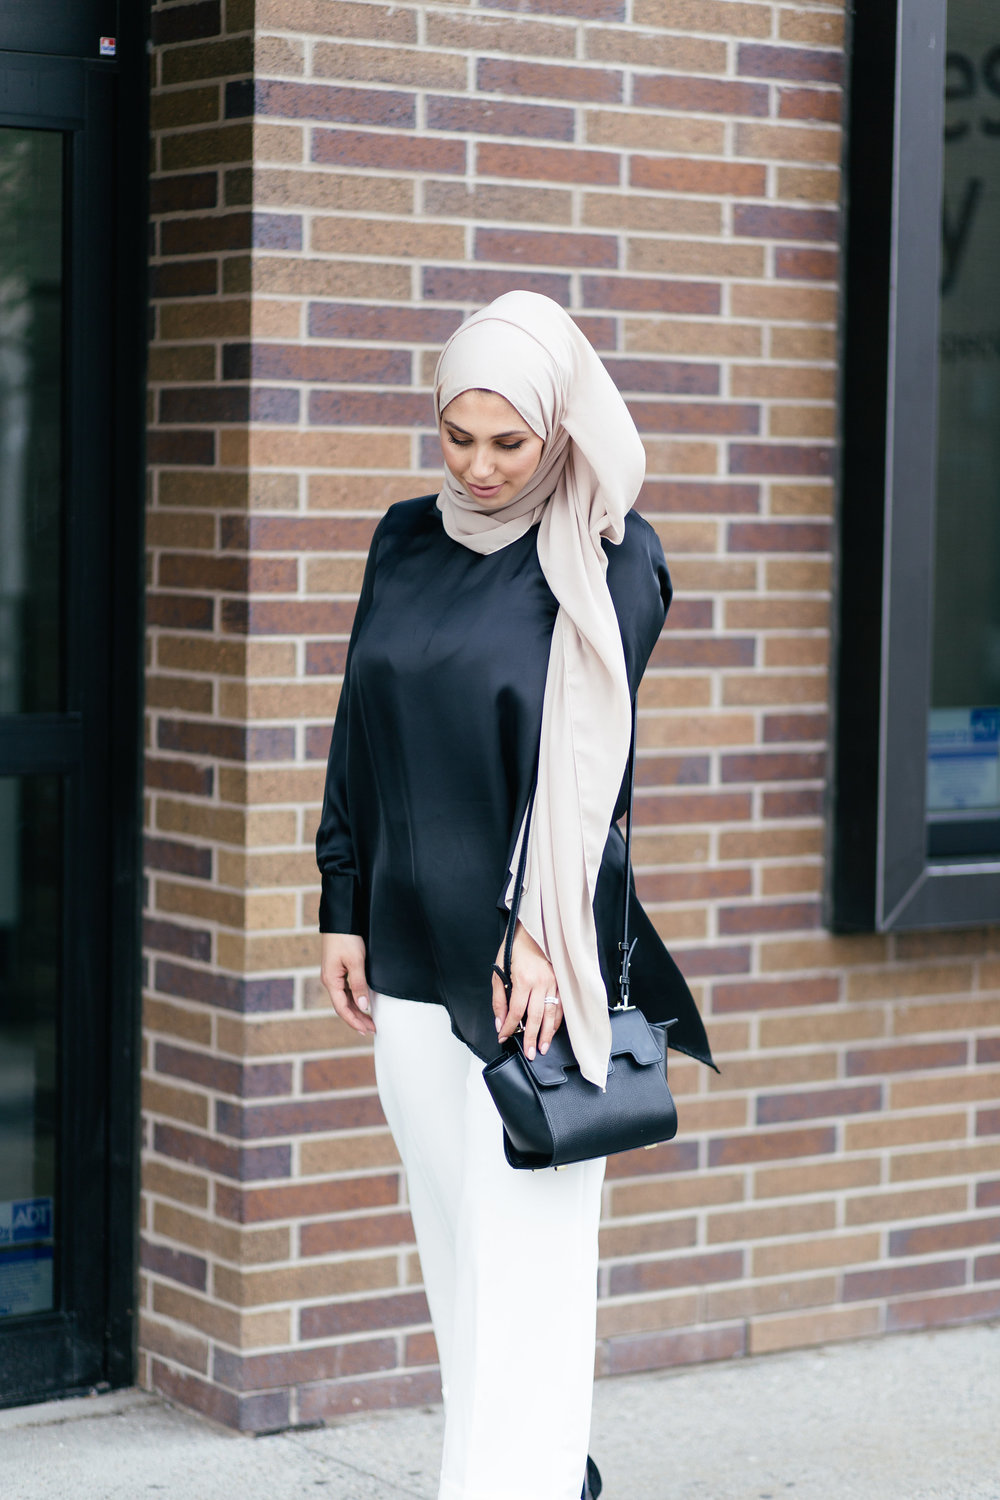 Black and white outfit.jpg